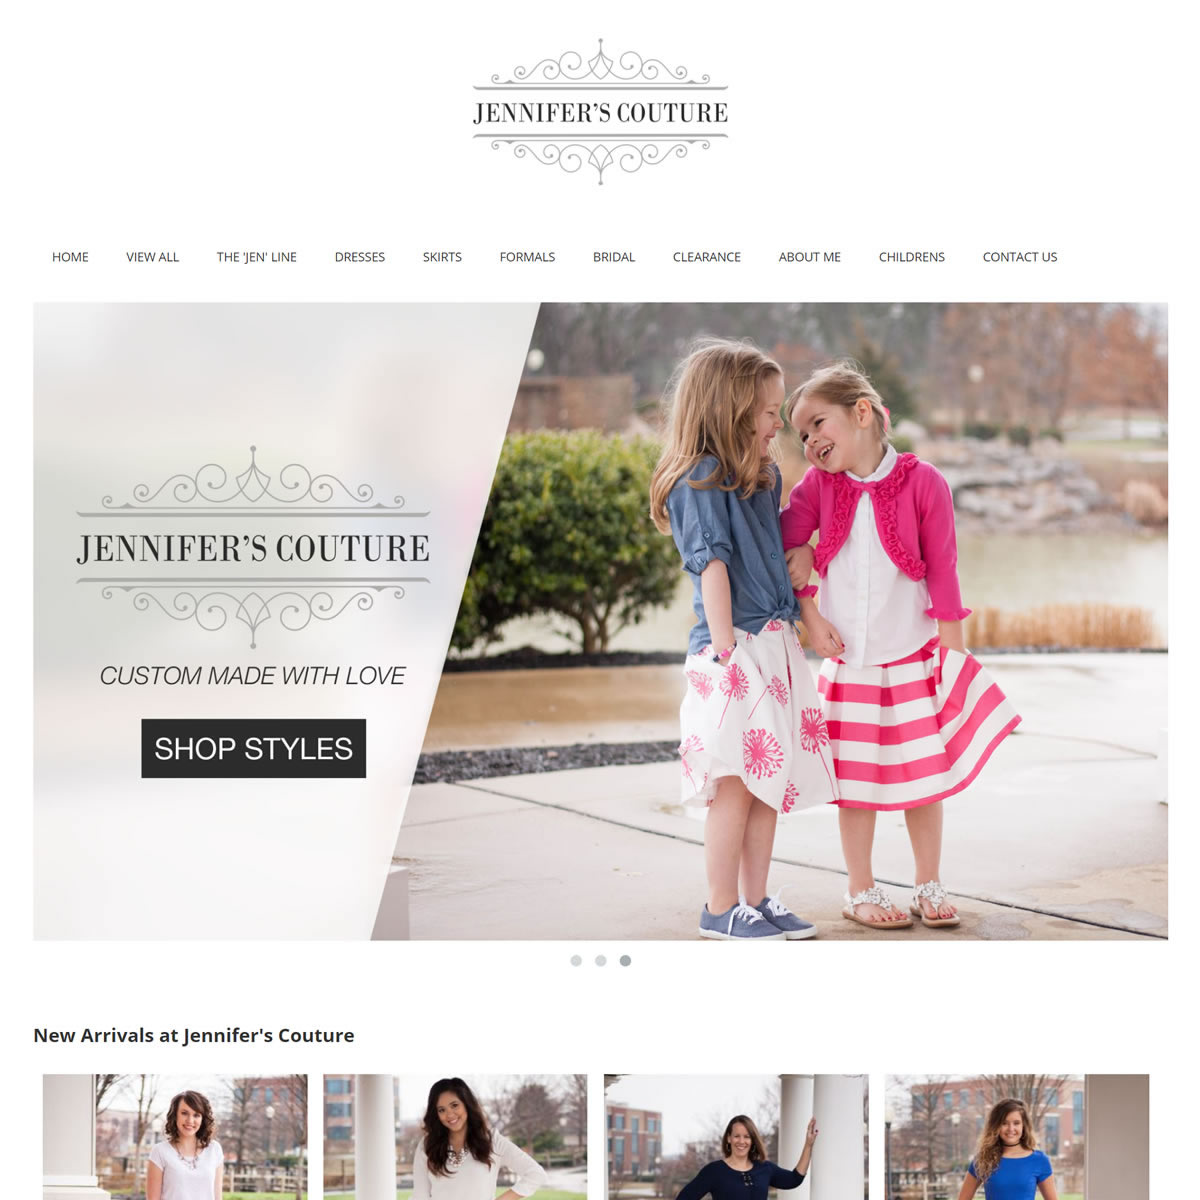 jennifers-couture-gohooper-web-design-in-murfreesboro-tn